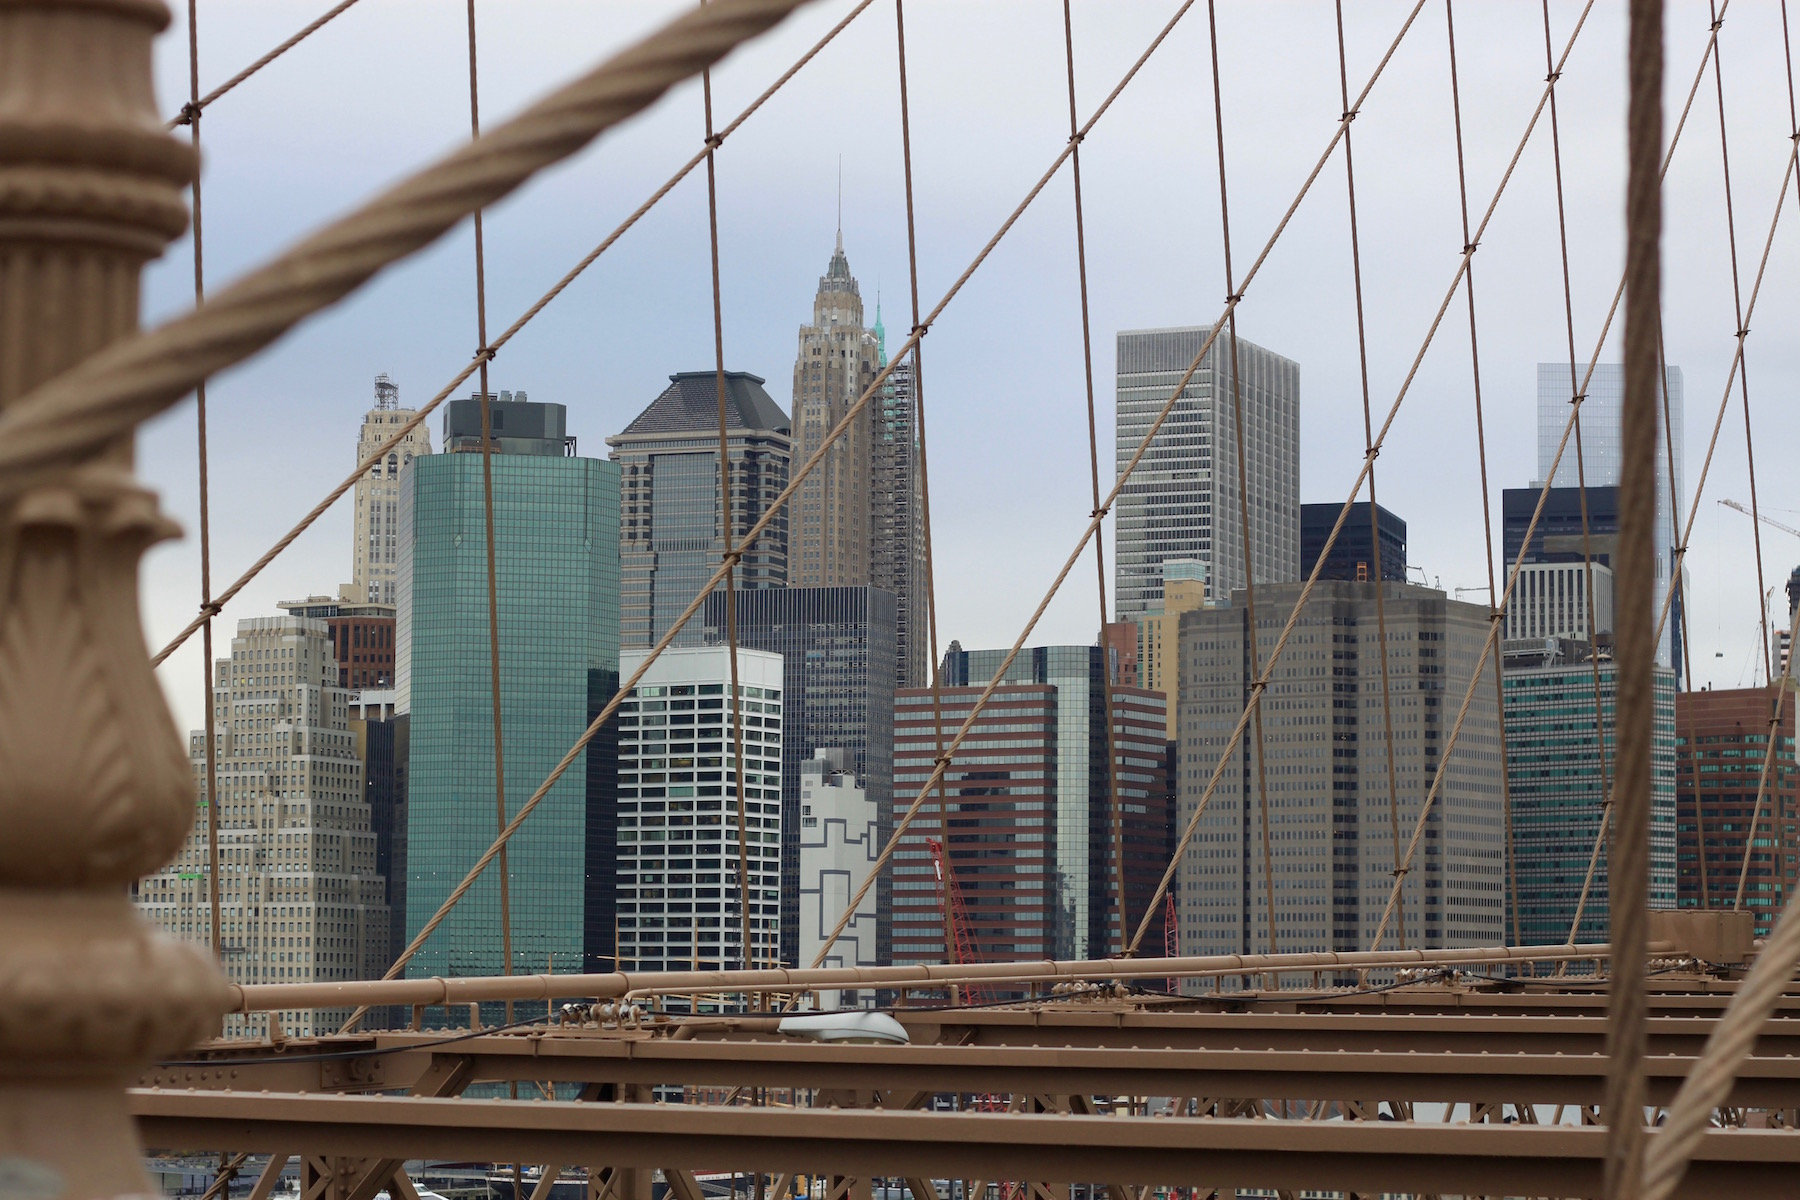 bridge-new-york-city-travel-guide-photography